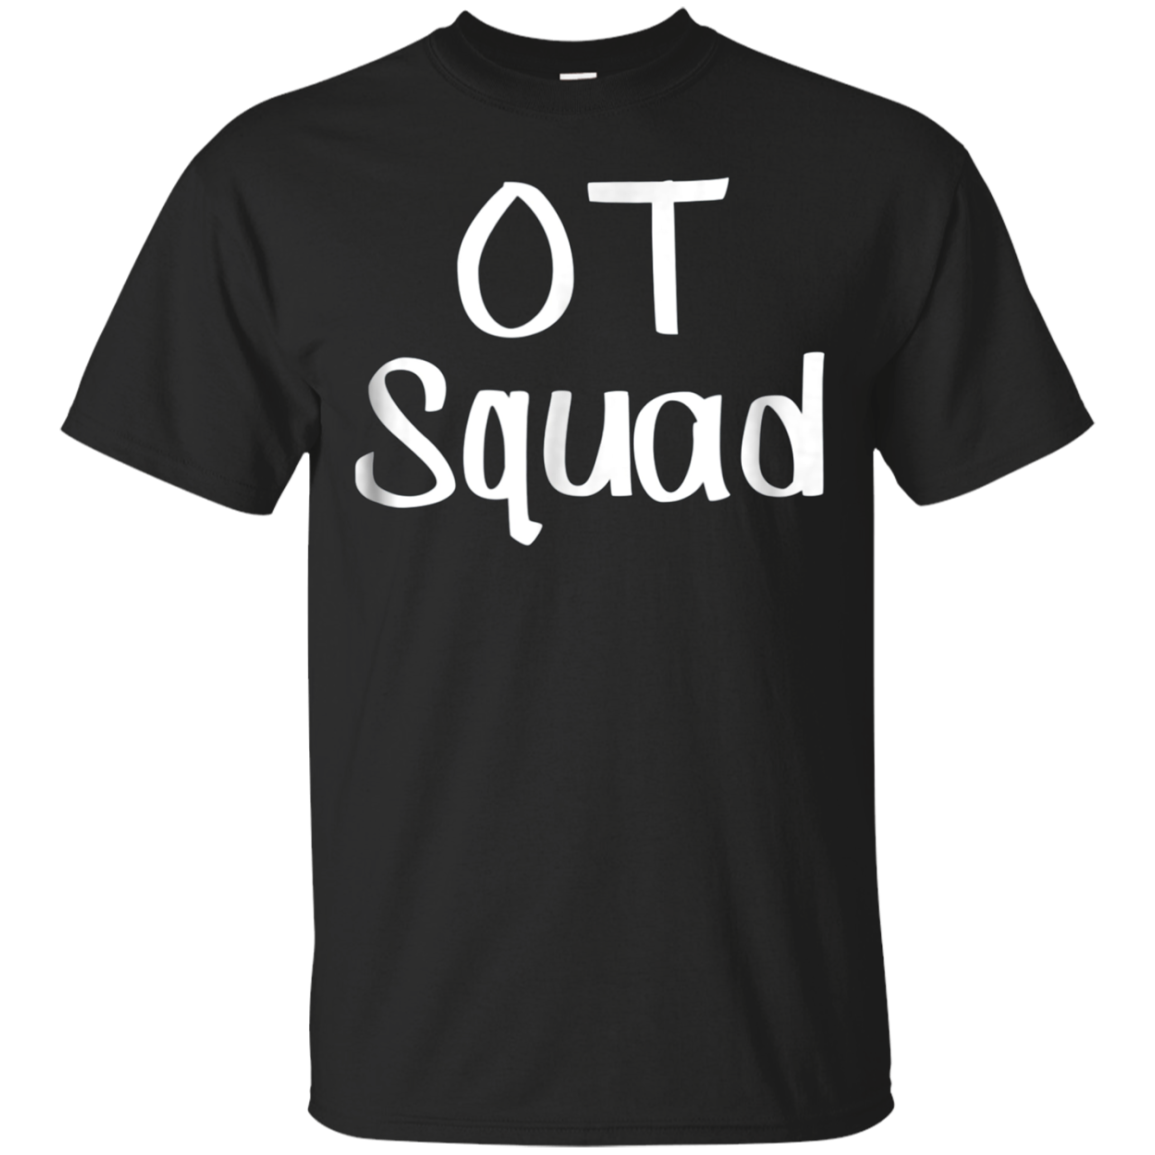 OT Squad Shirt for Occupational Therapists